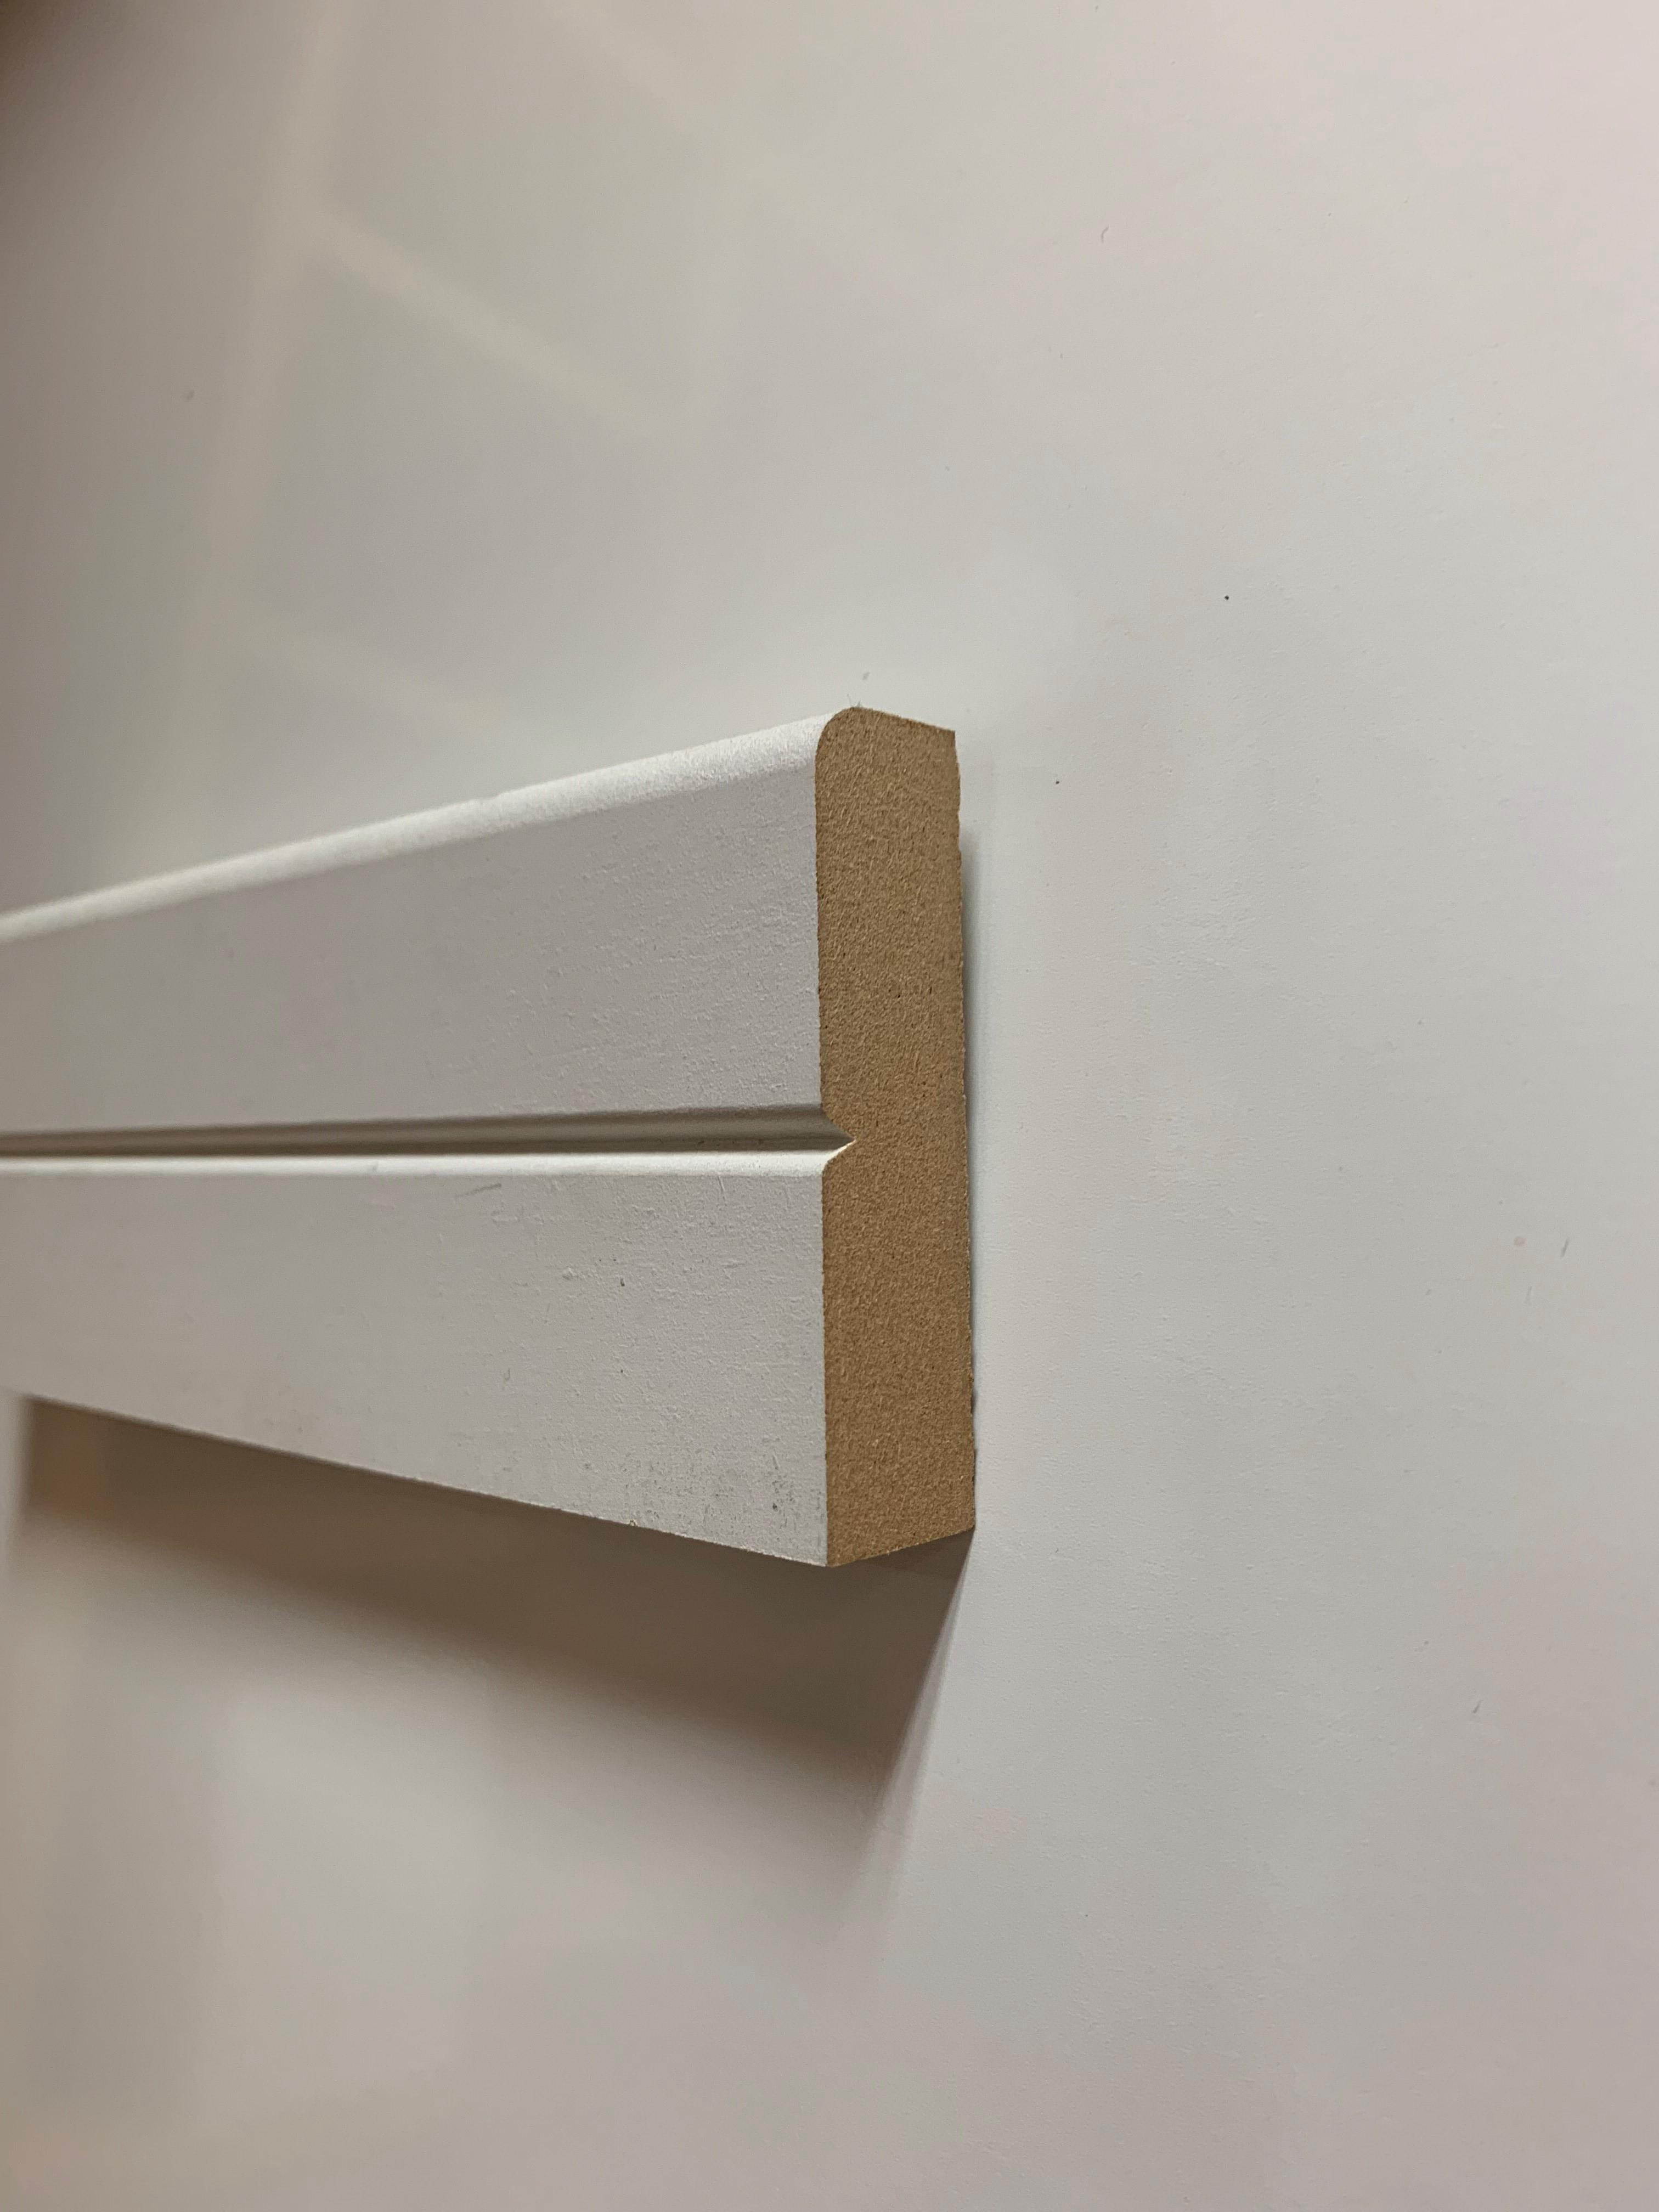 Burford Type 2 18mm x 68mm x 4.4 Mtr Primed Clearance